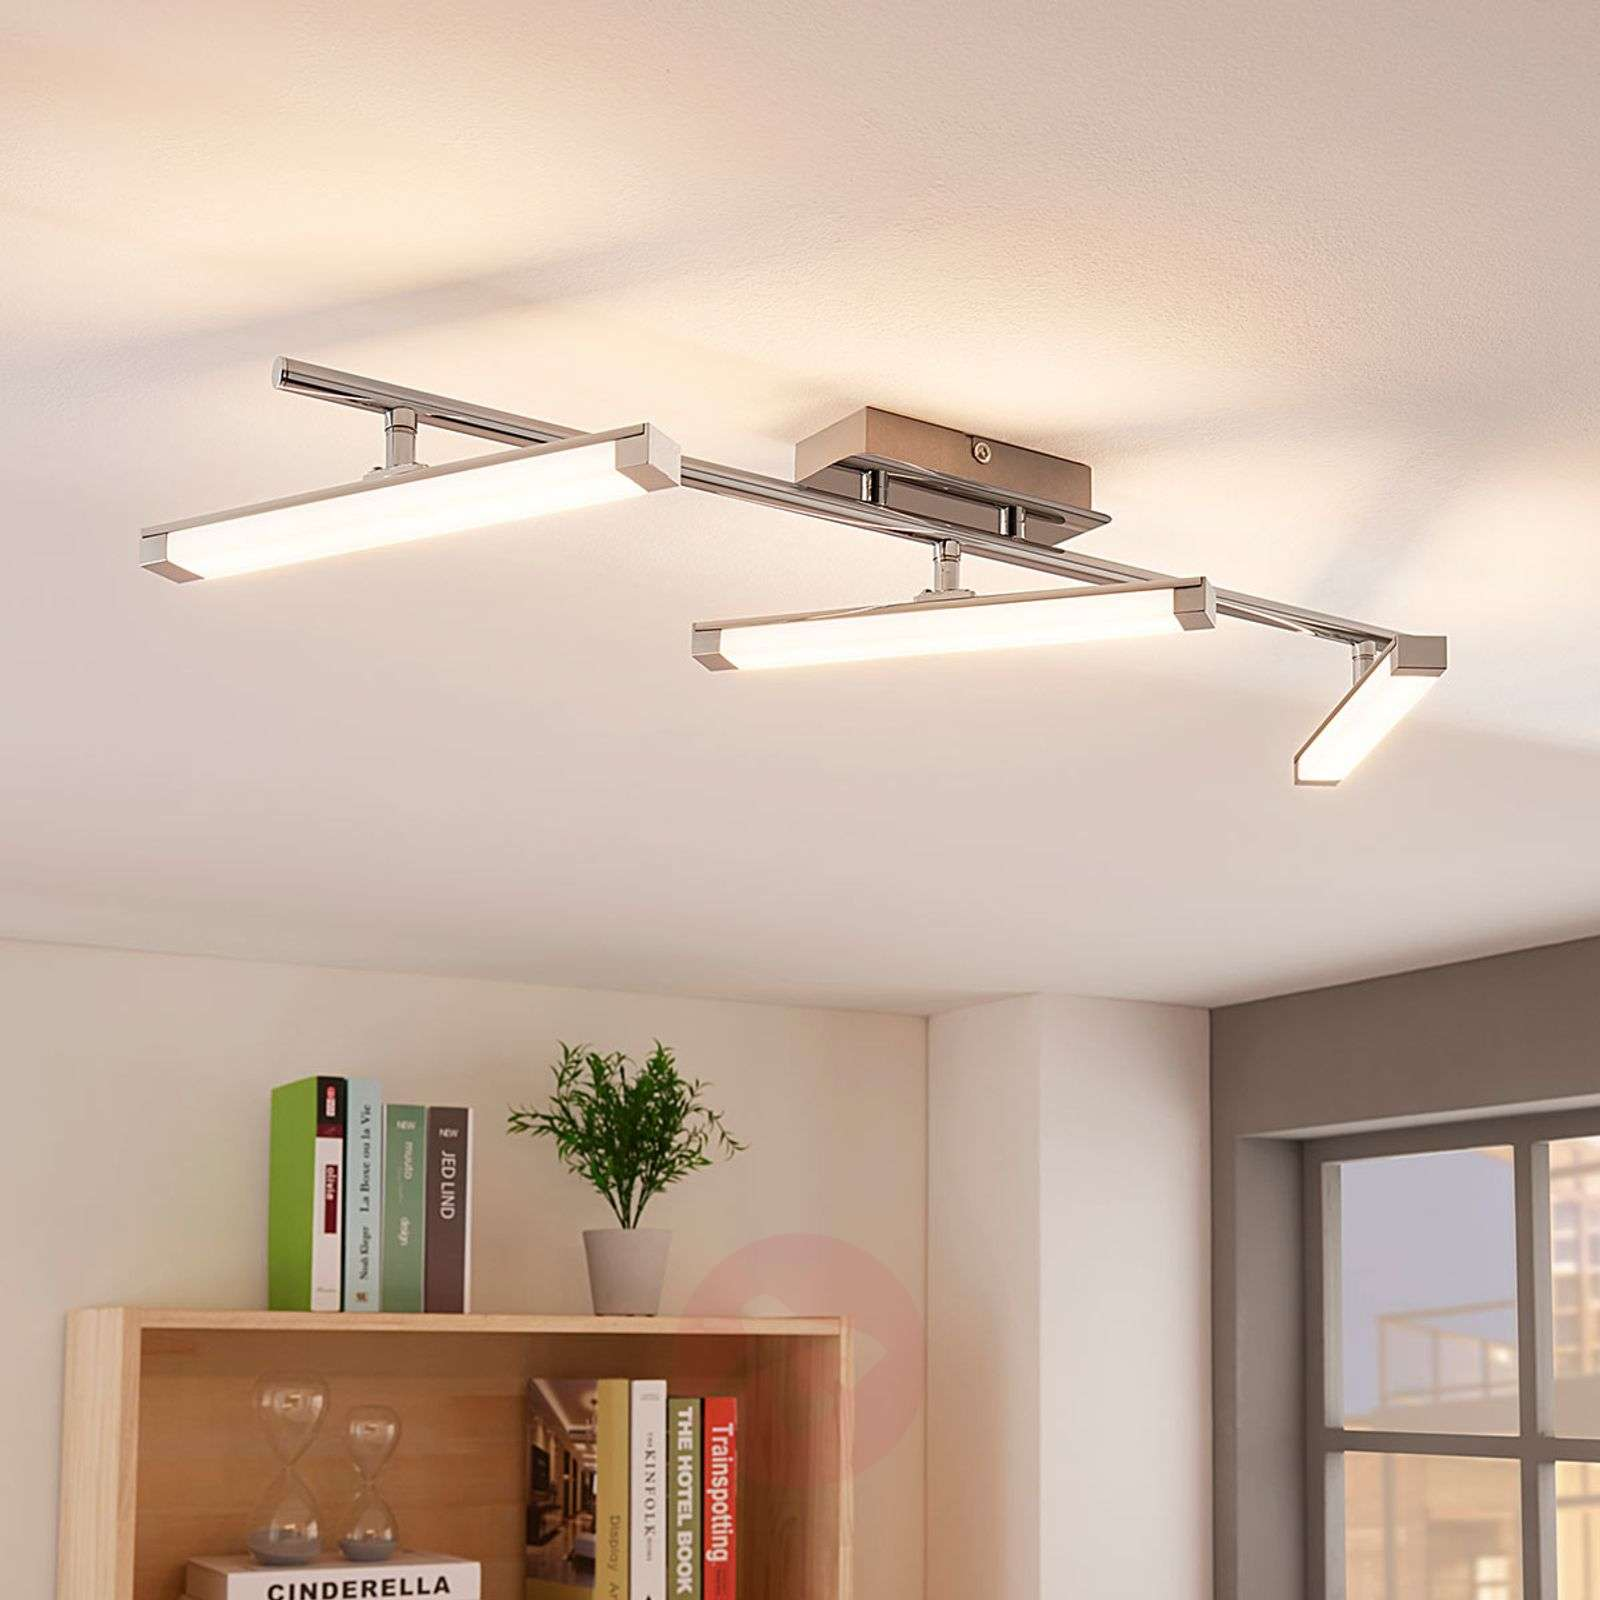 Plafoniera LED Pilou dimmerabile con interruttore-9621739-03